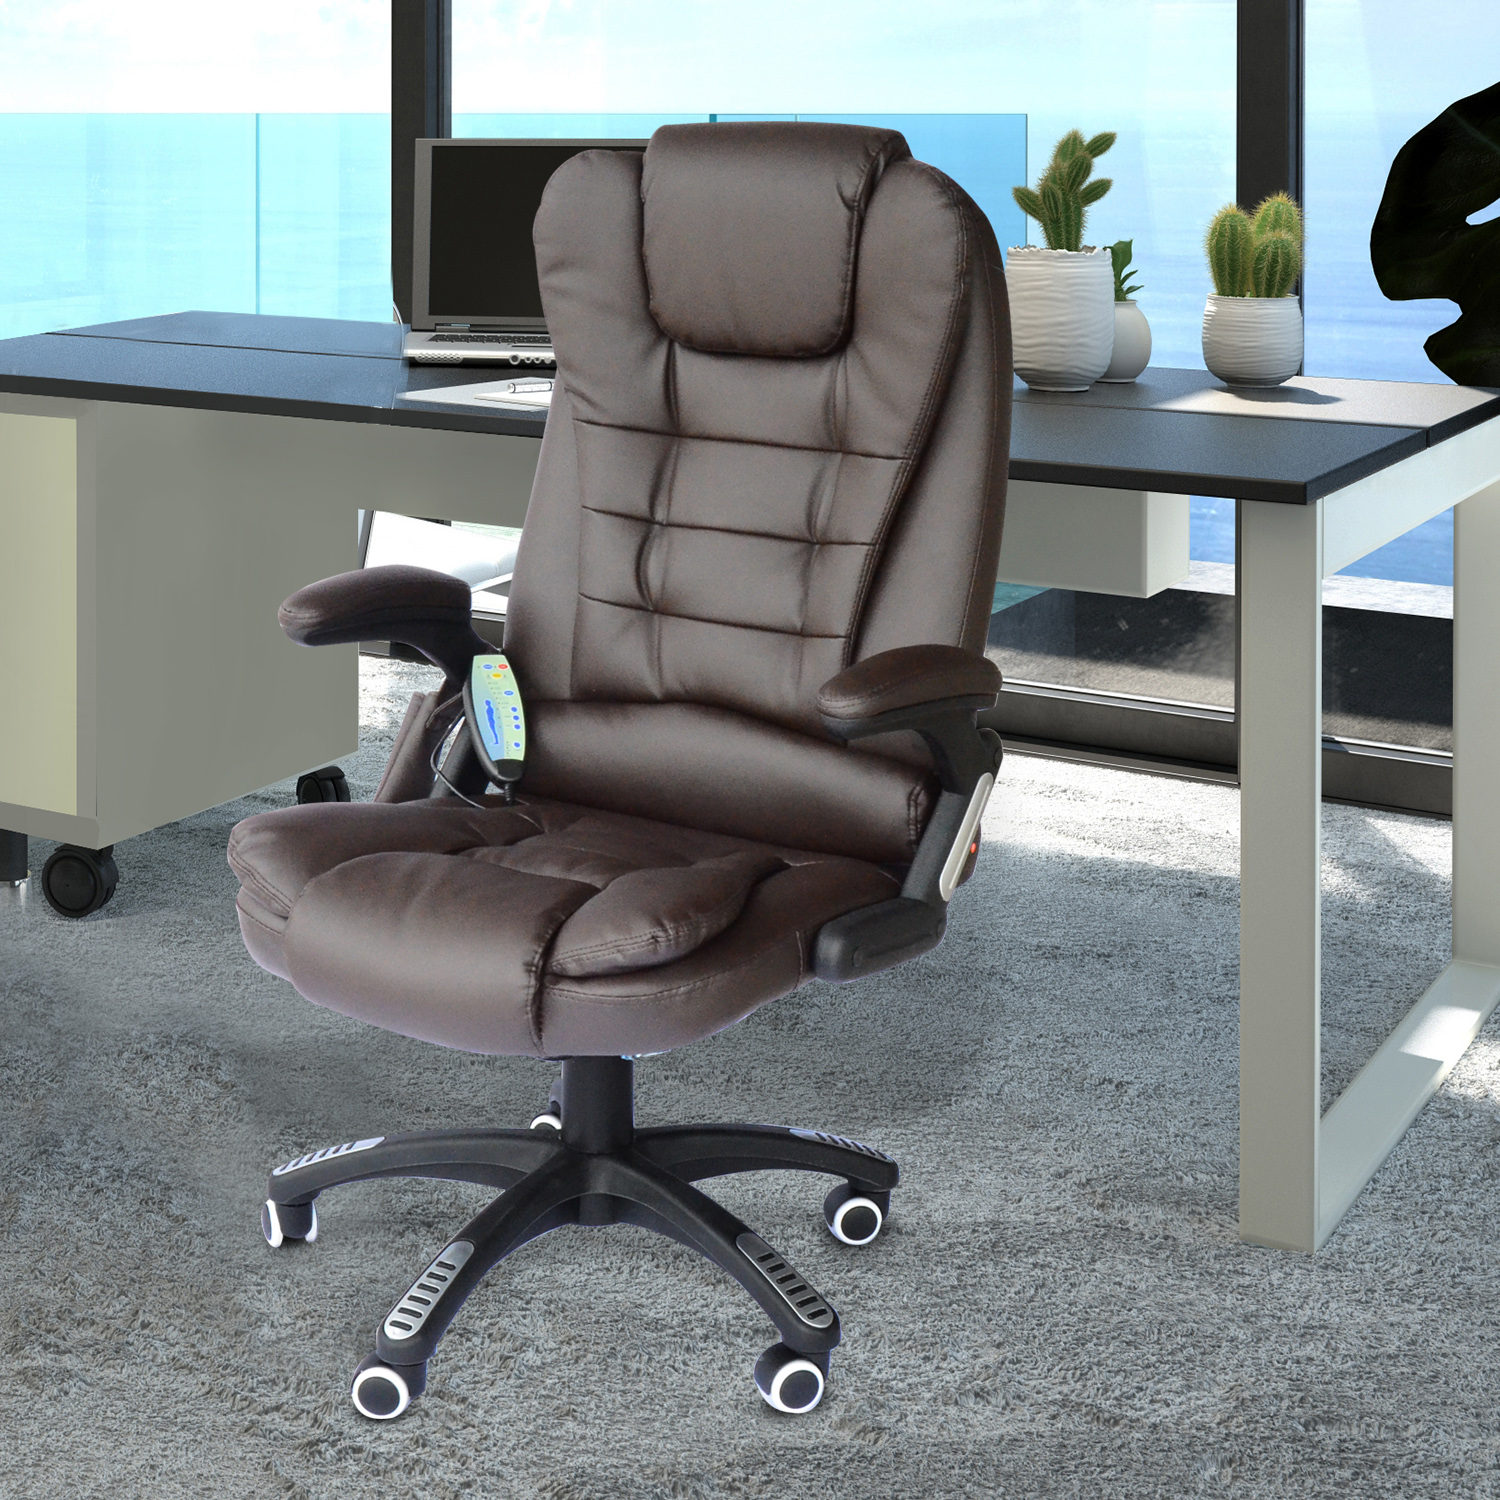 Homcom Executive Ergonomic Heated Vibrating Mage Office Chair ... on heated chair cushion, vibration chair, heated chair mat, heated outdoor chair, bathroom chair, vibrating gaming chair, heated clinical chair, china chair, heated back massager for chairs, heated chair cover, heated seat pads for chairs, heated folding chair, heated recliner chairs, heated ergonomic chair, heated bean bag chair, heated desk chair pad, heated massage chair, person on a vibrating chair, heated camp chair, heated lounge chair,